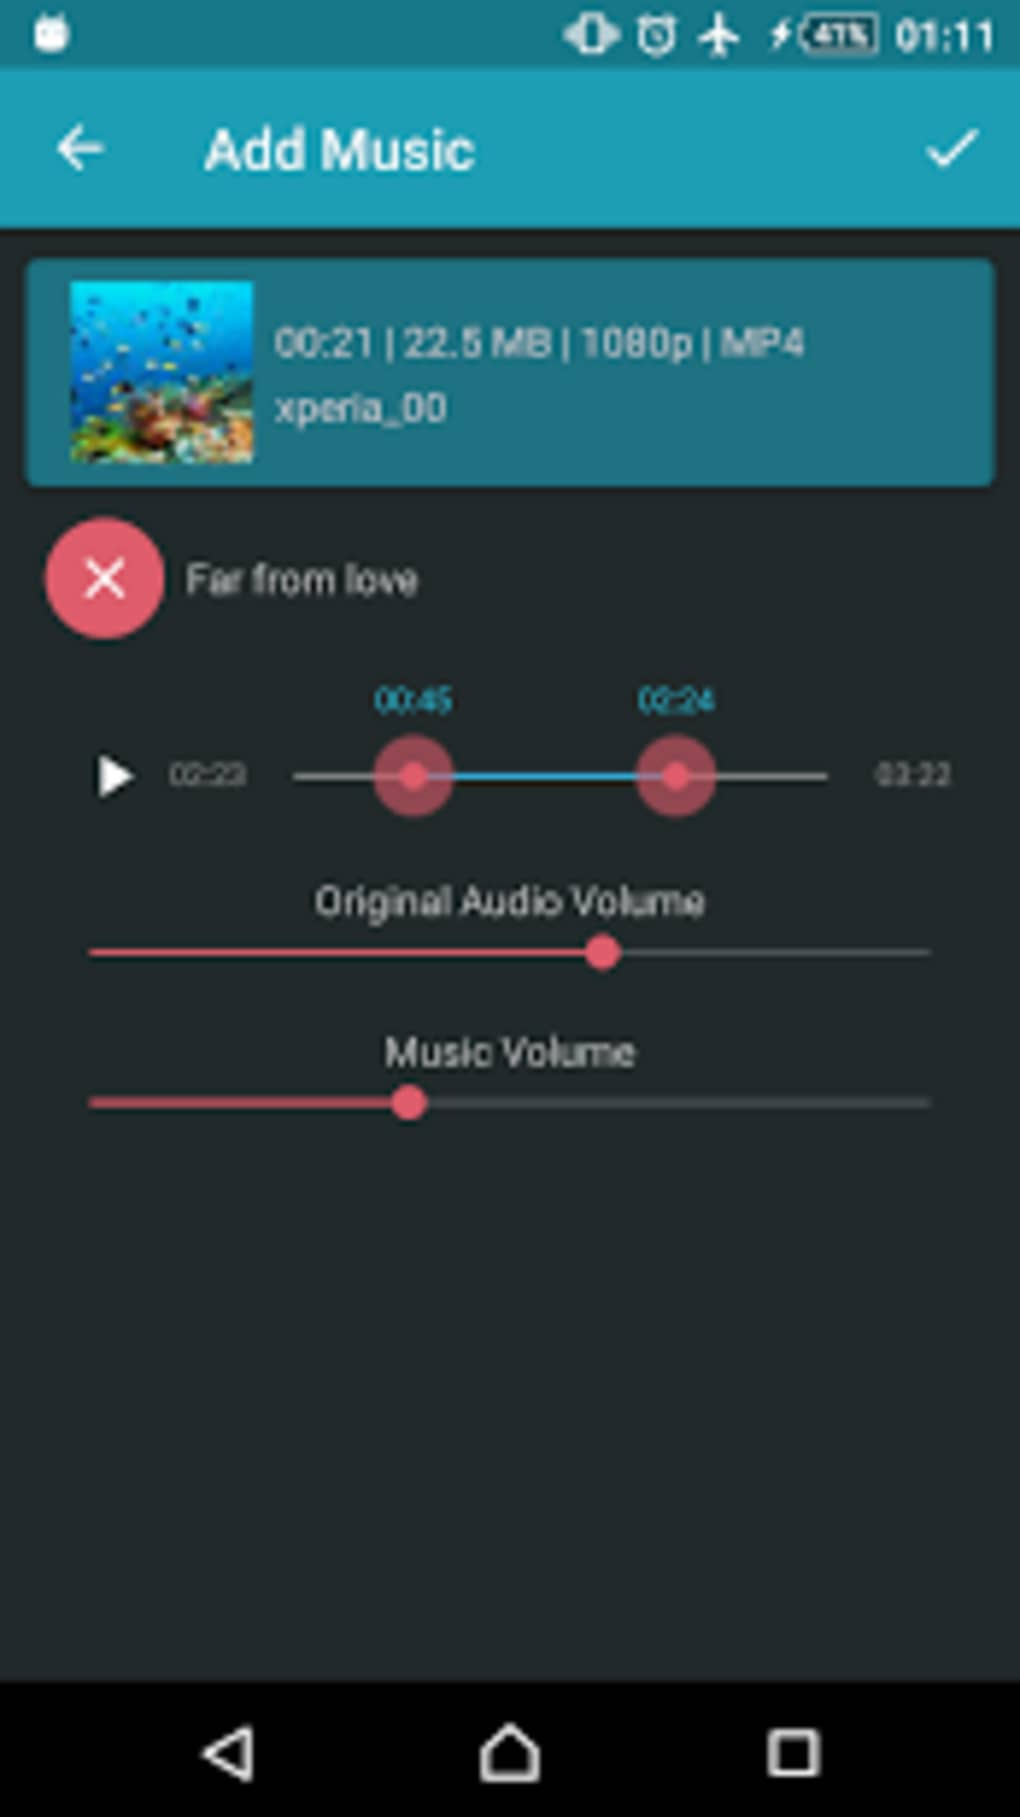 androvid pro video editor 2.9.3.5 apk for android